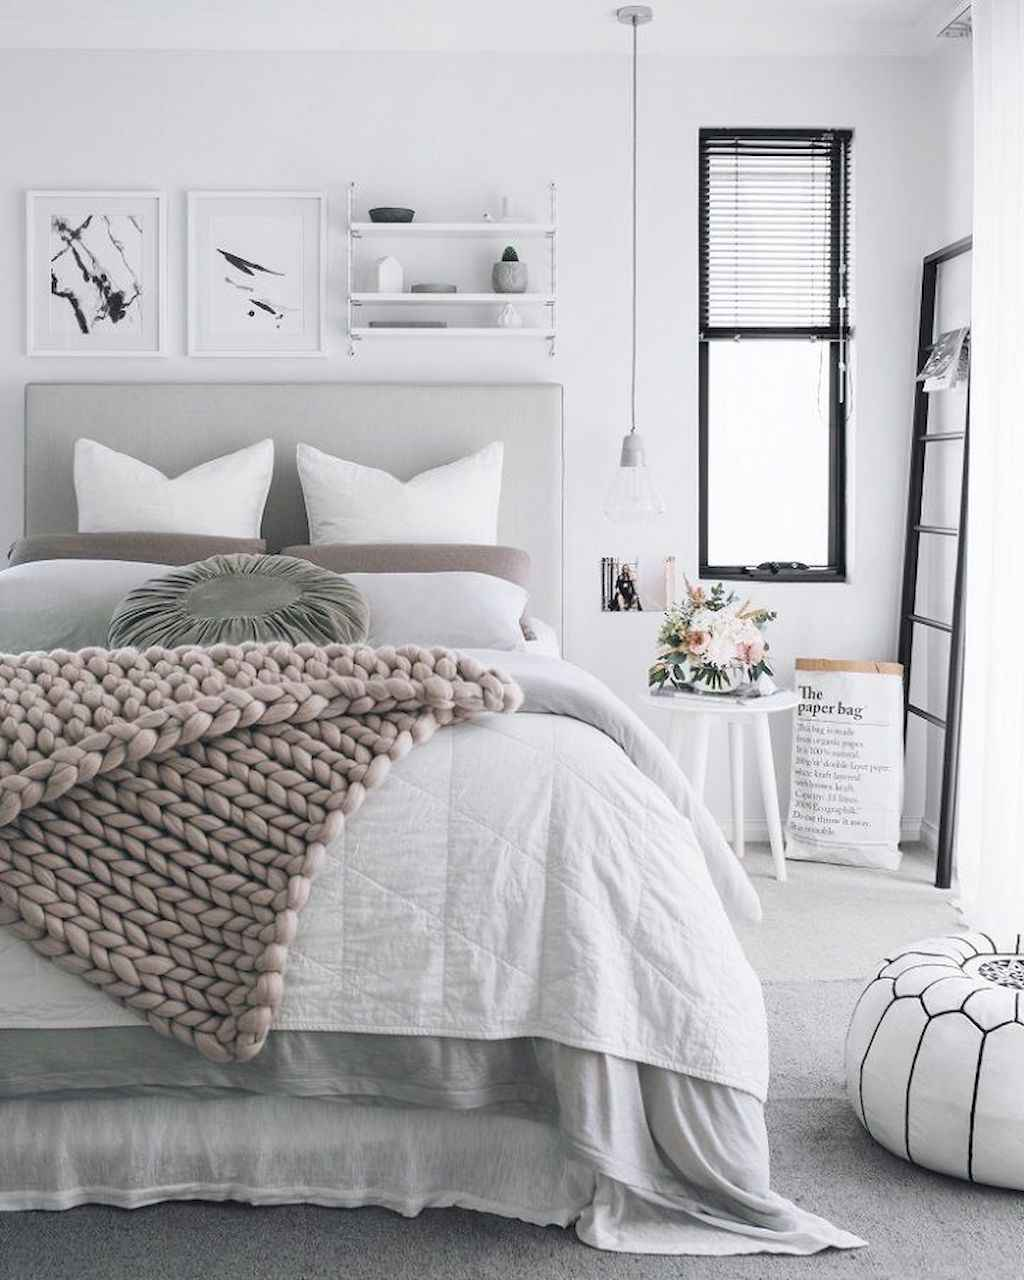 Couples first apartment decorating ideas (11)